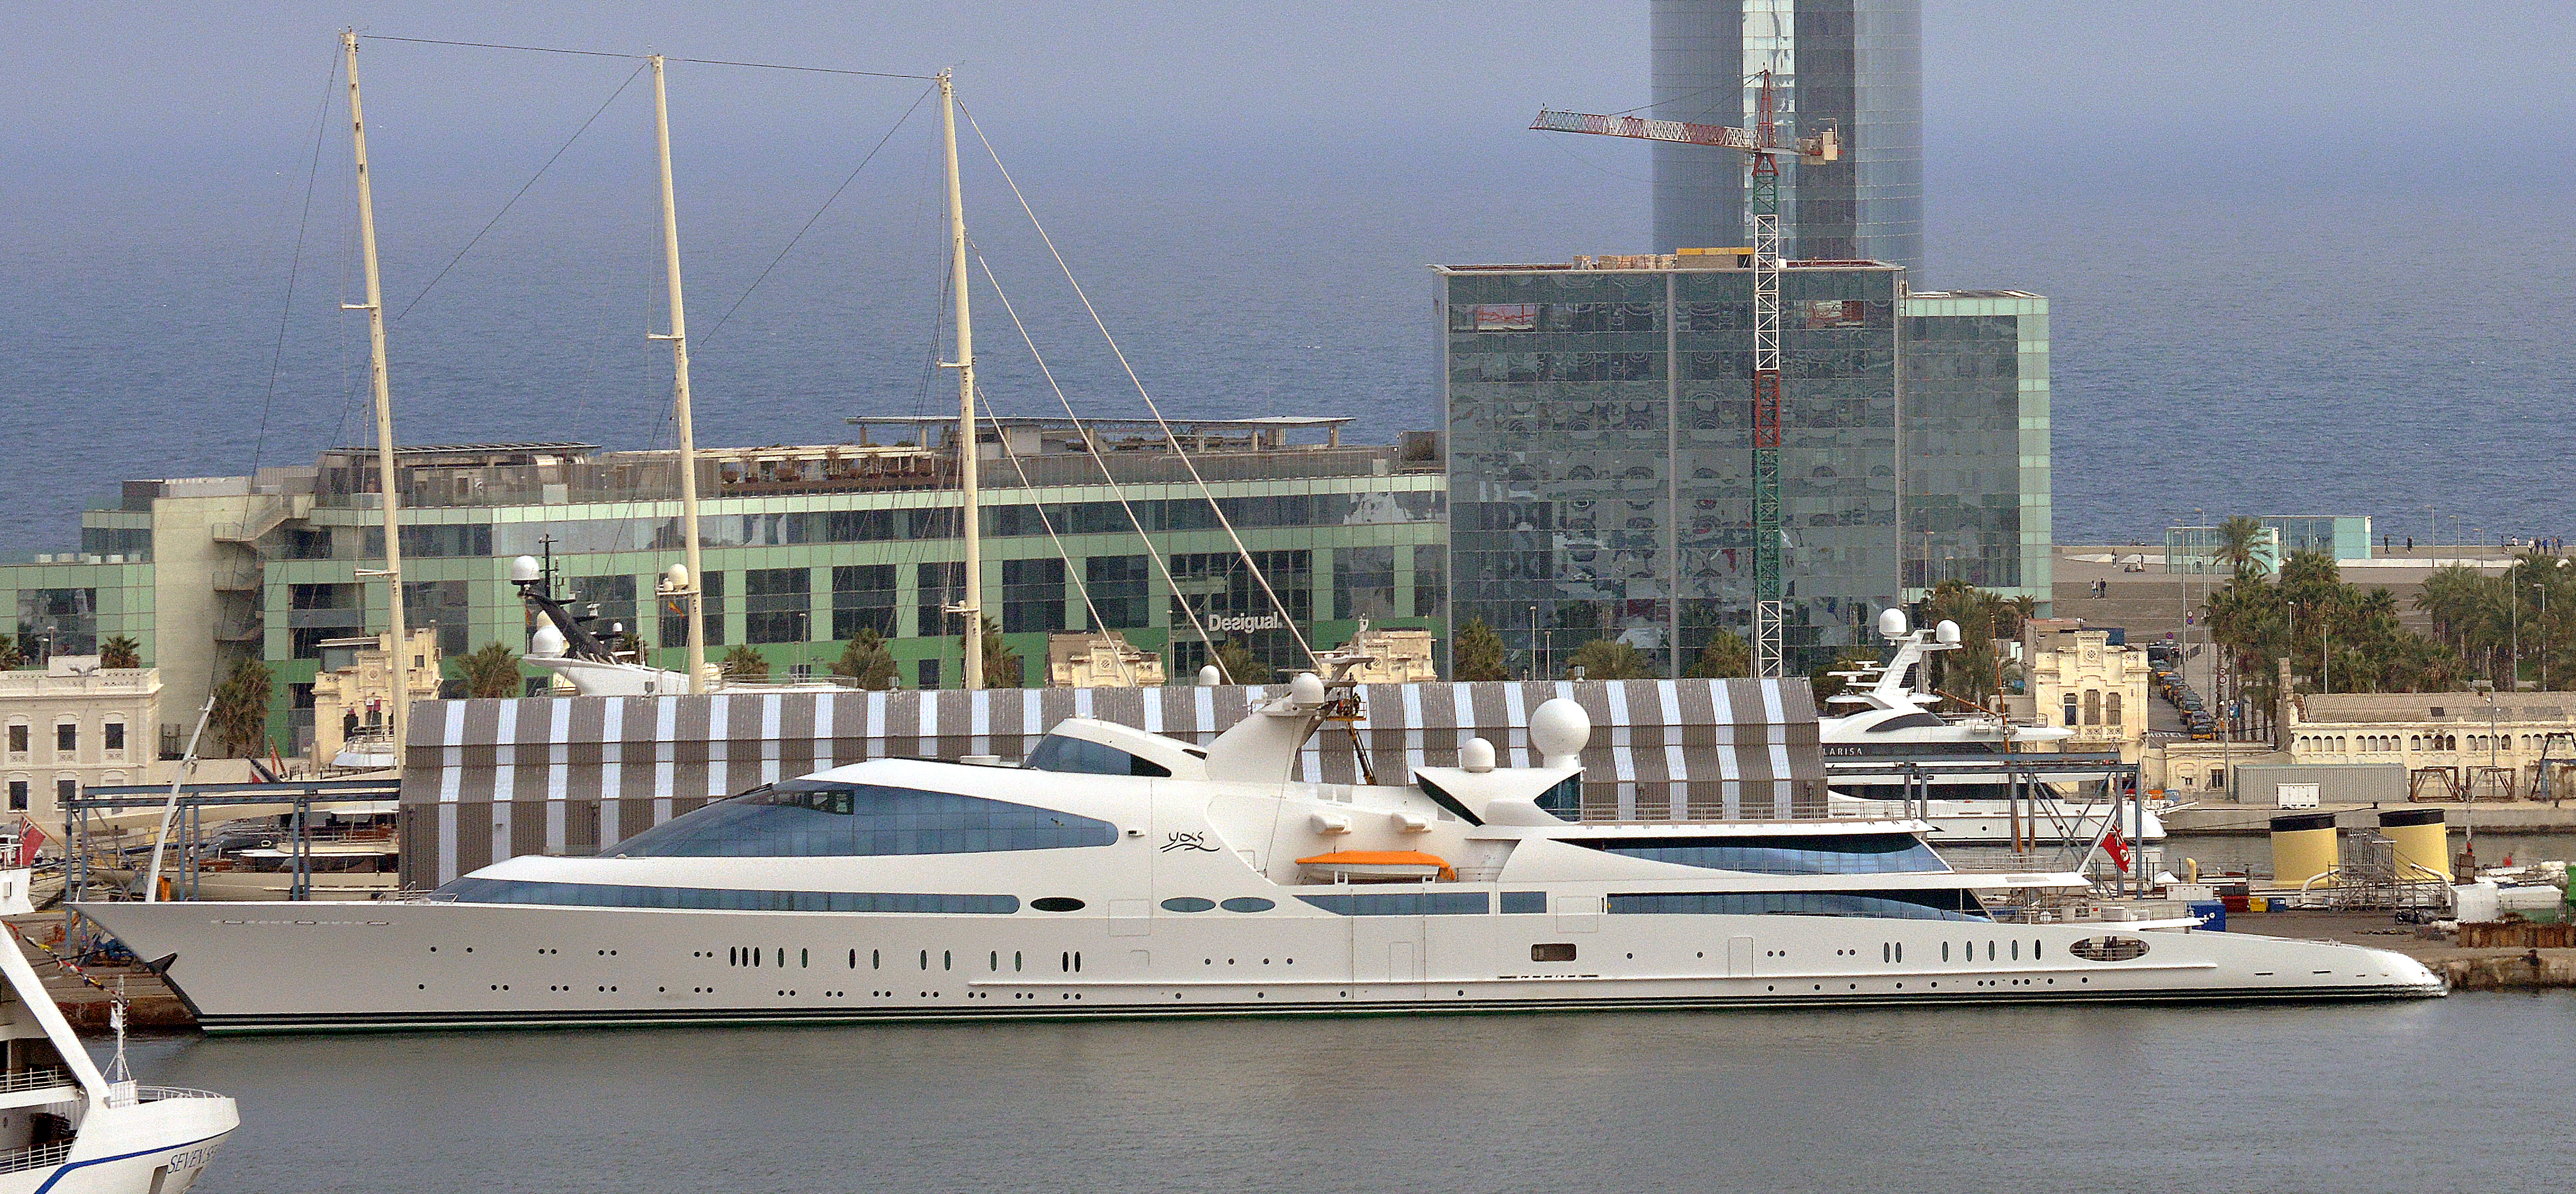 Les Emirats Arabes Unis - Page 2 Yas_yacht_in_Barcelona_port